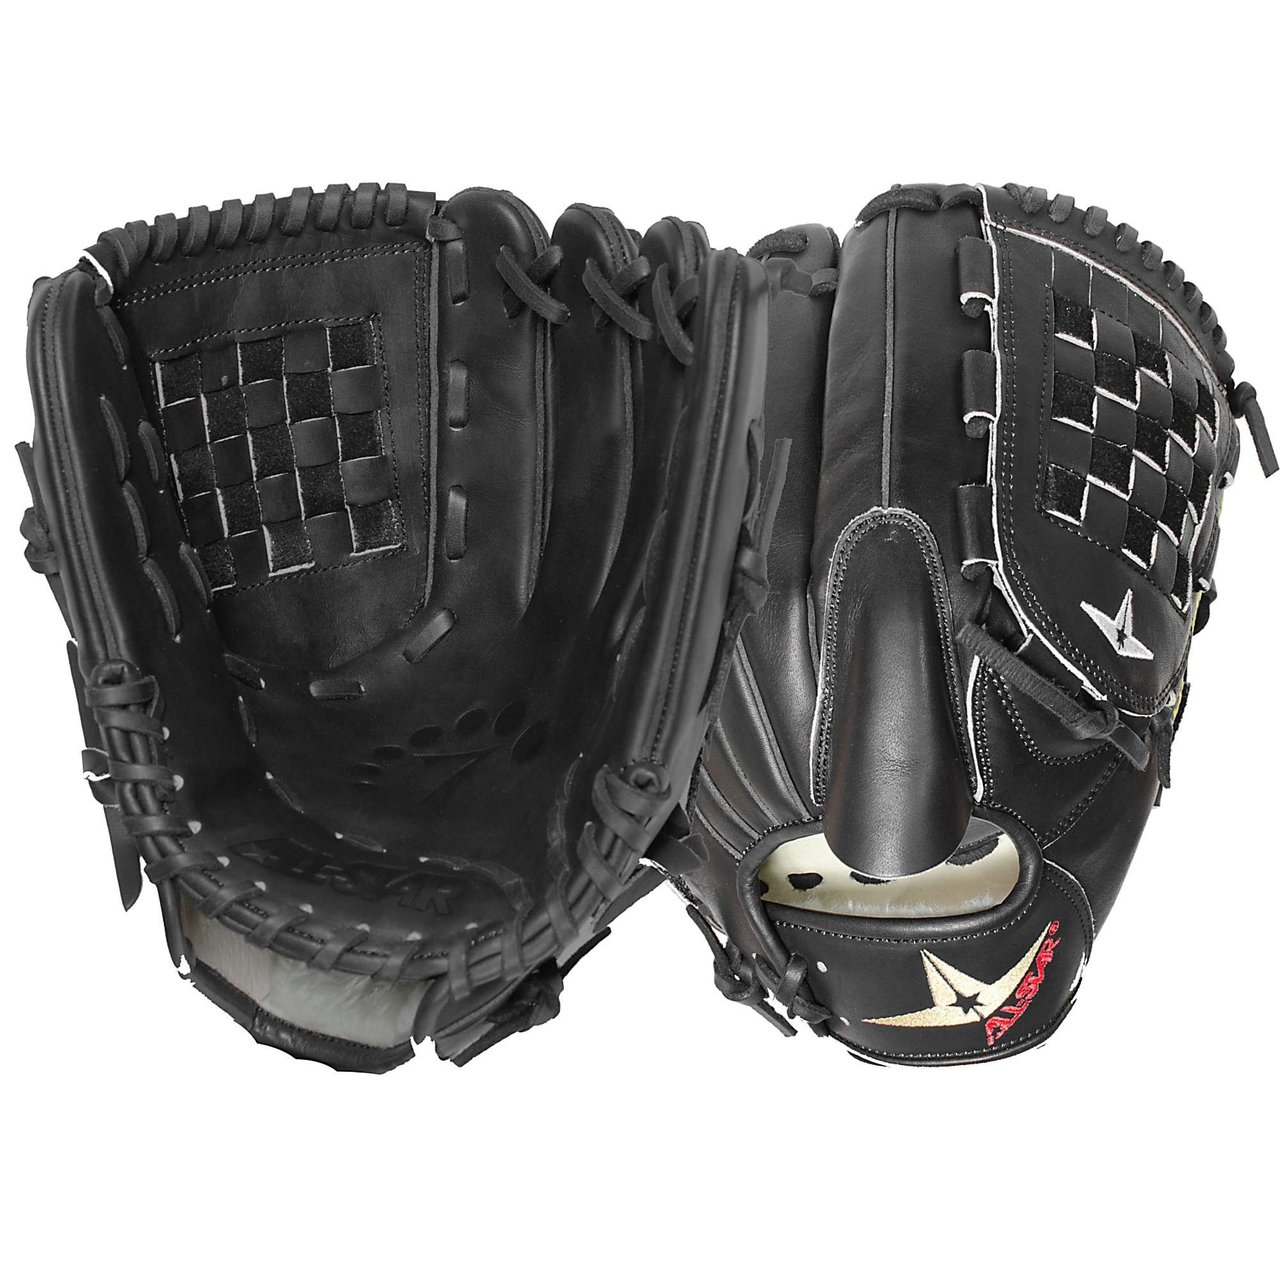 All Star System Seven FGS7-PTBK Baseball Glove 12 Inch (Left Handed Throw) : Designed with the same high quality leather which made the CM3000 series catching mitts so popular, these System Seven fielding gloves have a similar personality: Fast break in and long lasting. High quality selection of Japanese Maruhashi black and tan leather. By design, All Star's tan leather breaks in fast and forms a great pocket. All Star lines the back of our gloves with black leather because it is more durable and stiffer, providing support for a long lasting glove. Pro Guard Padding provides a thin layer of extra padding in the palm area of the glove which helps kill the sting of a mis-caught ball. Pro Guard Padding is thin enough to still have enough feeling, so that you know exactly where the ball is located. System Seven fielding gloves are designed for specific position's needs. These gloves feel like an extension of your arm, empowering you with a long enough reach, maximum control, and complete confidence.